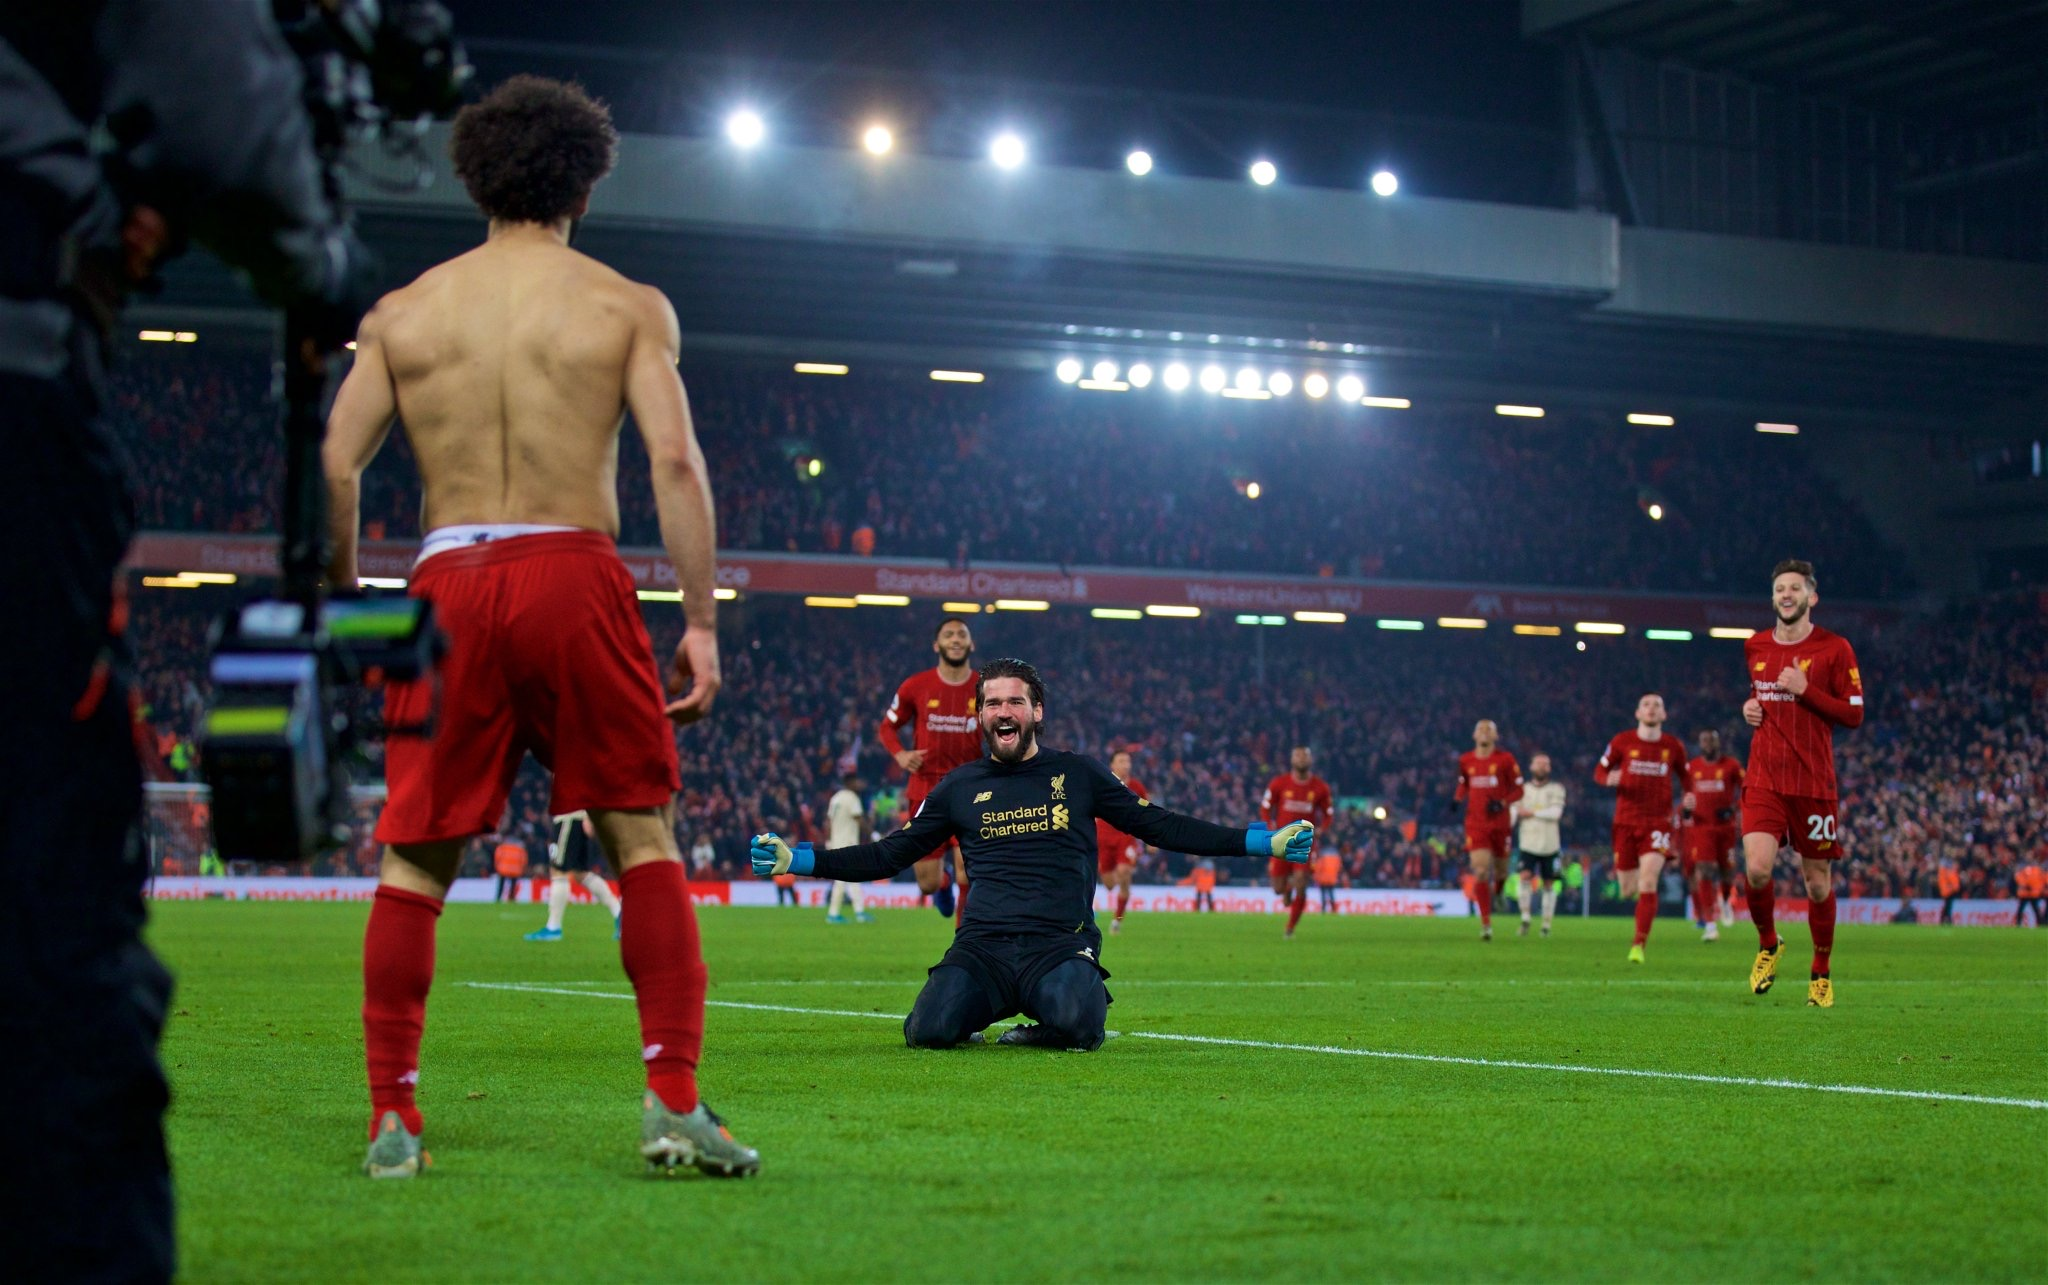 Photo of El Liverpool se queda con el derbi frente al Manchester United